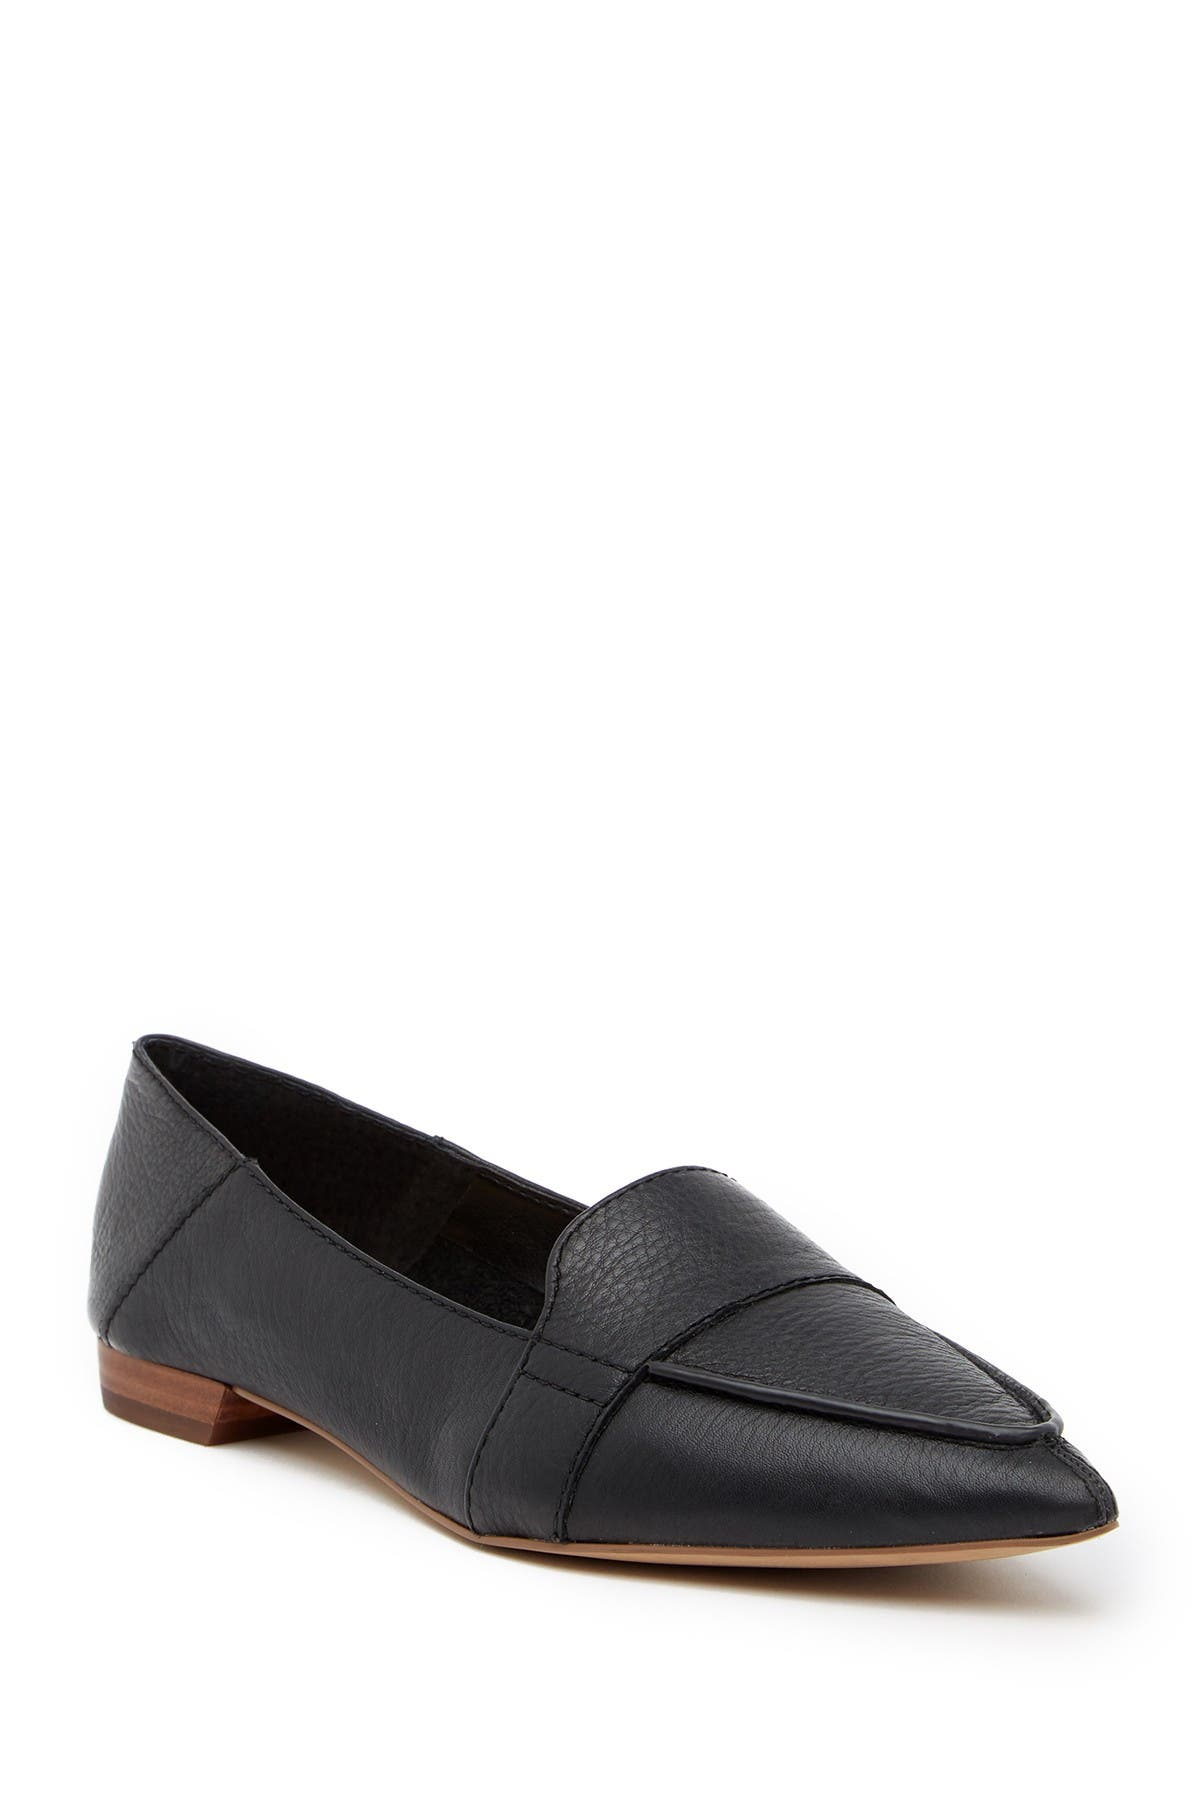 Image of Vince Camuto Maita Loafer Flat